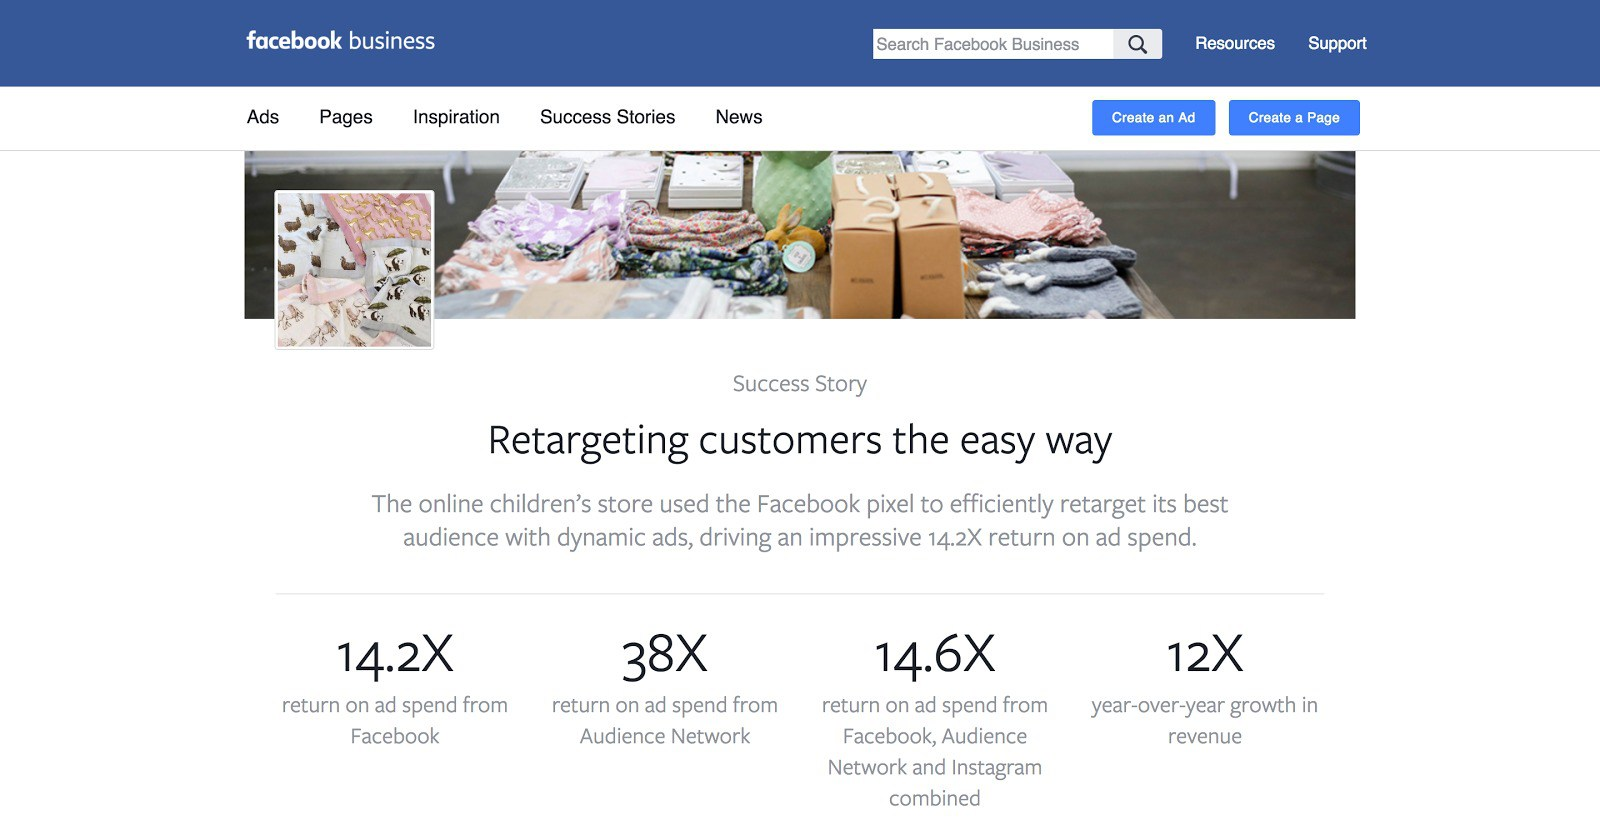 Social Media marketing case study for retargeting